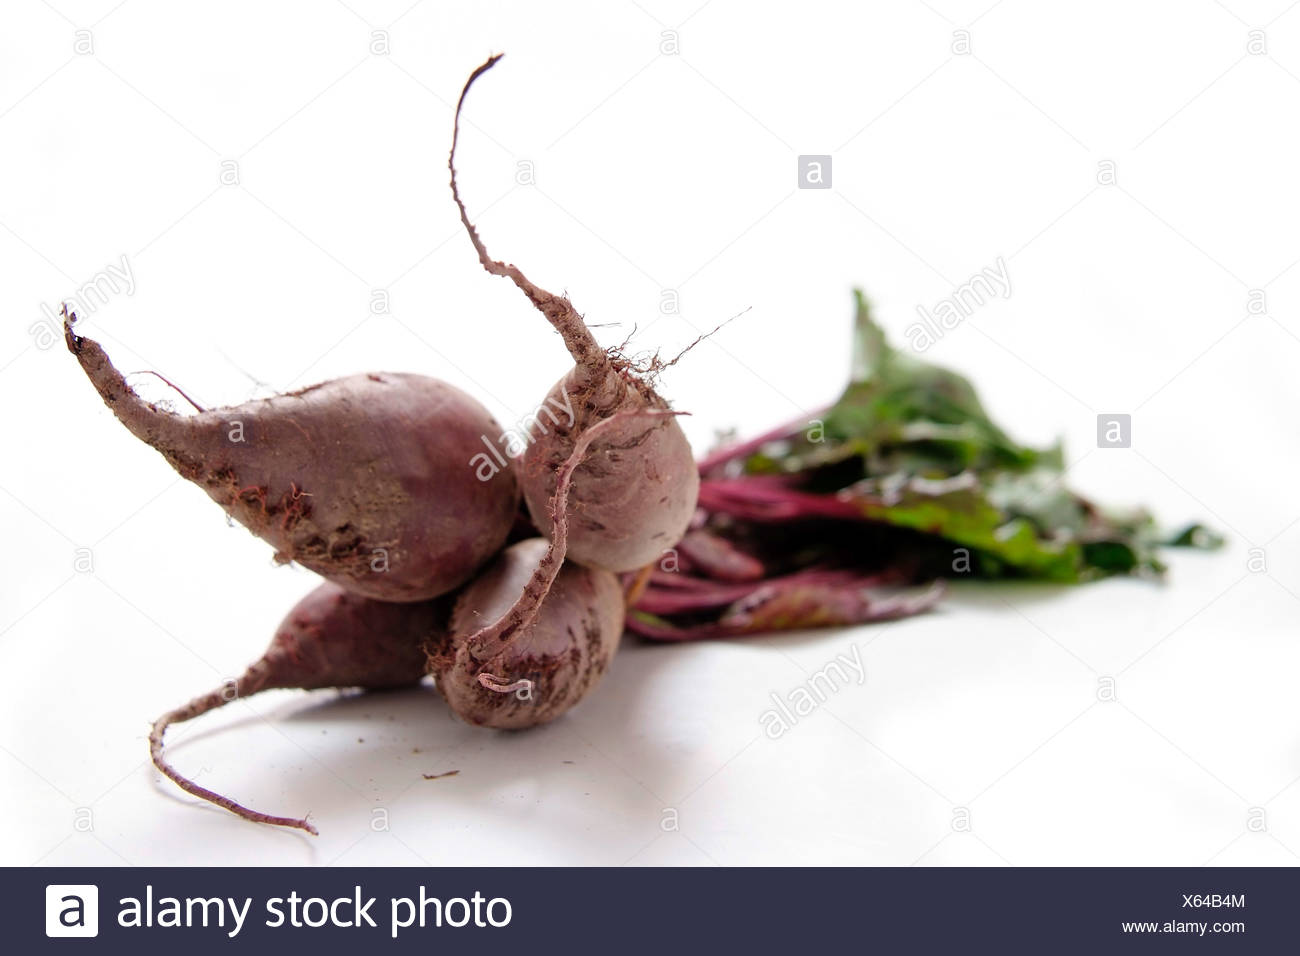 Bundle of beetroot with leaves on white - Stock Image